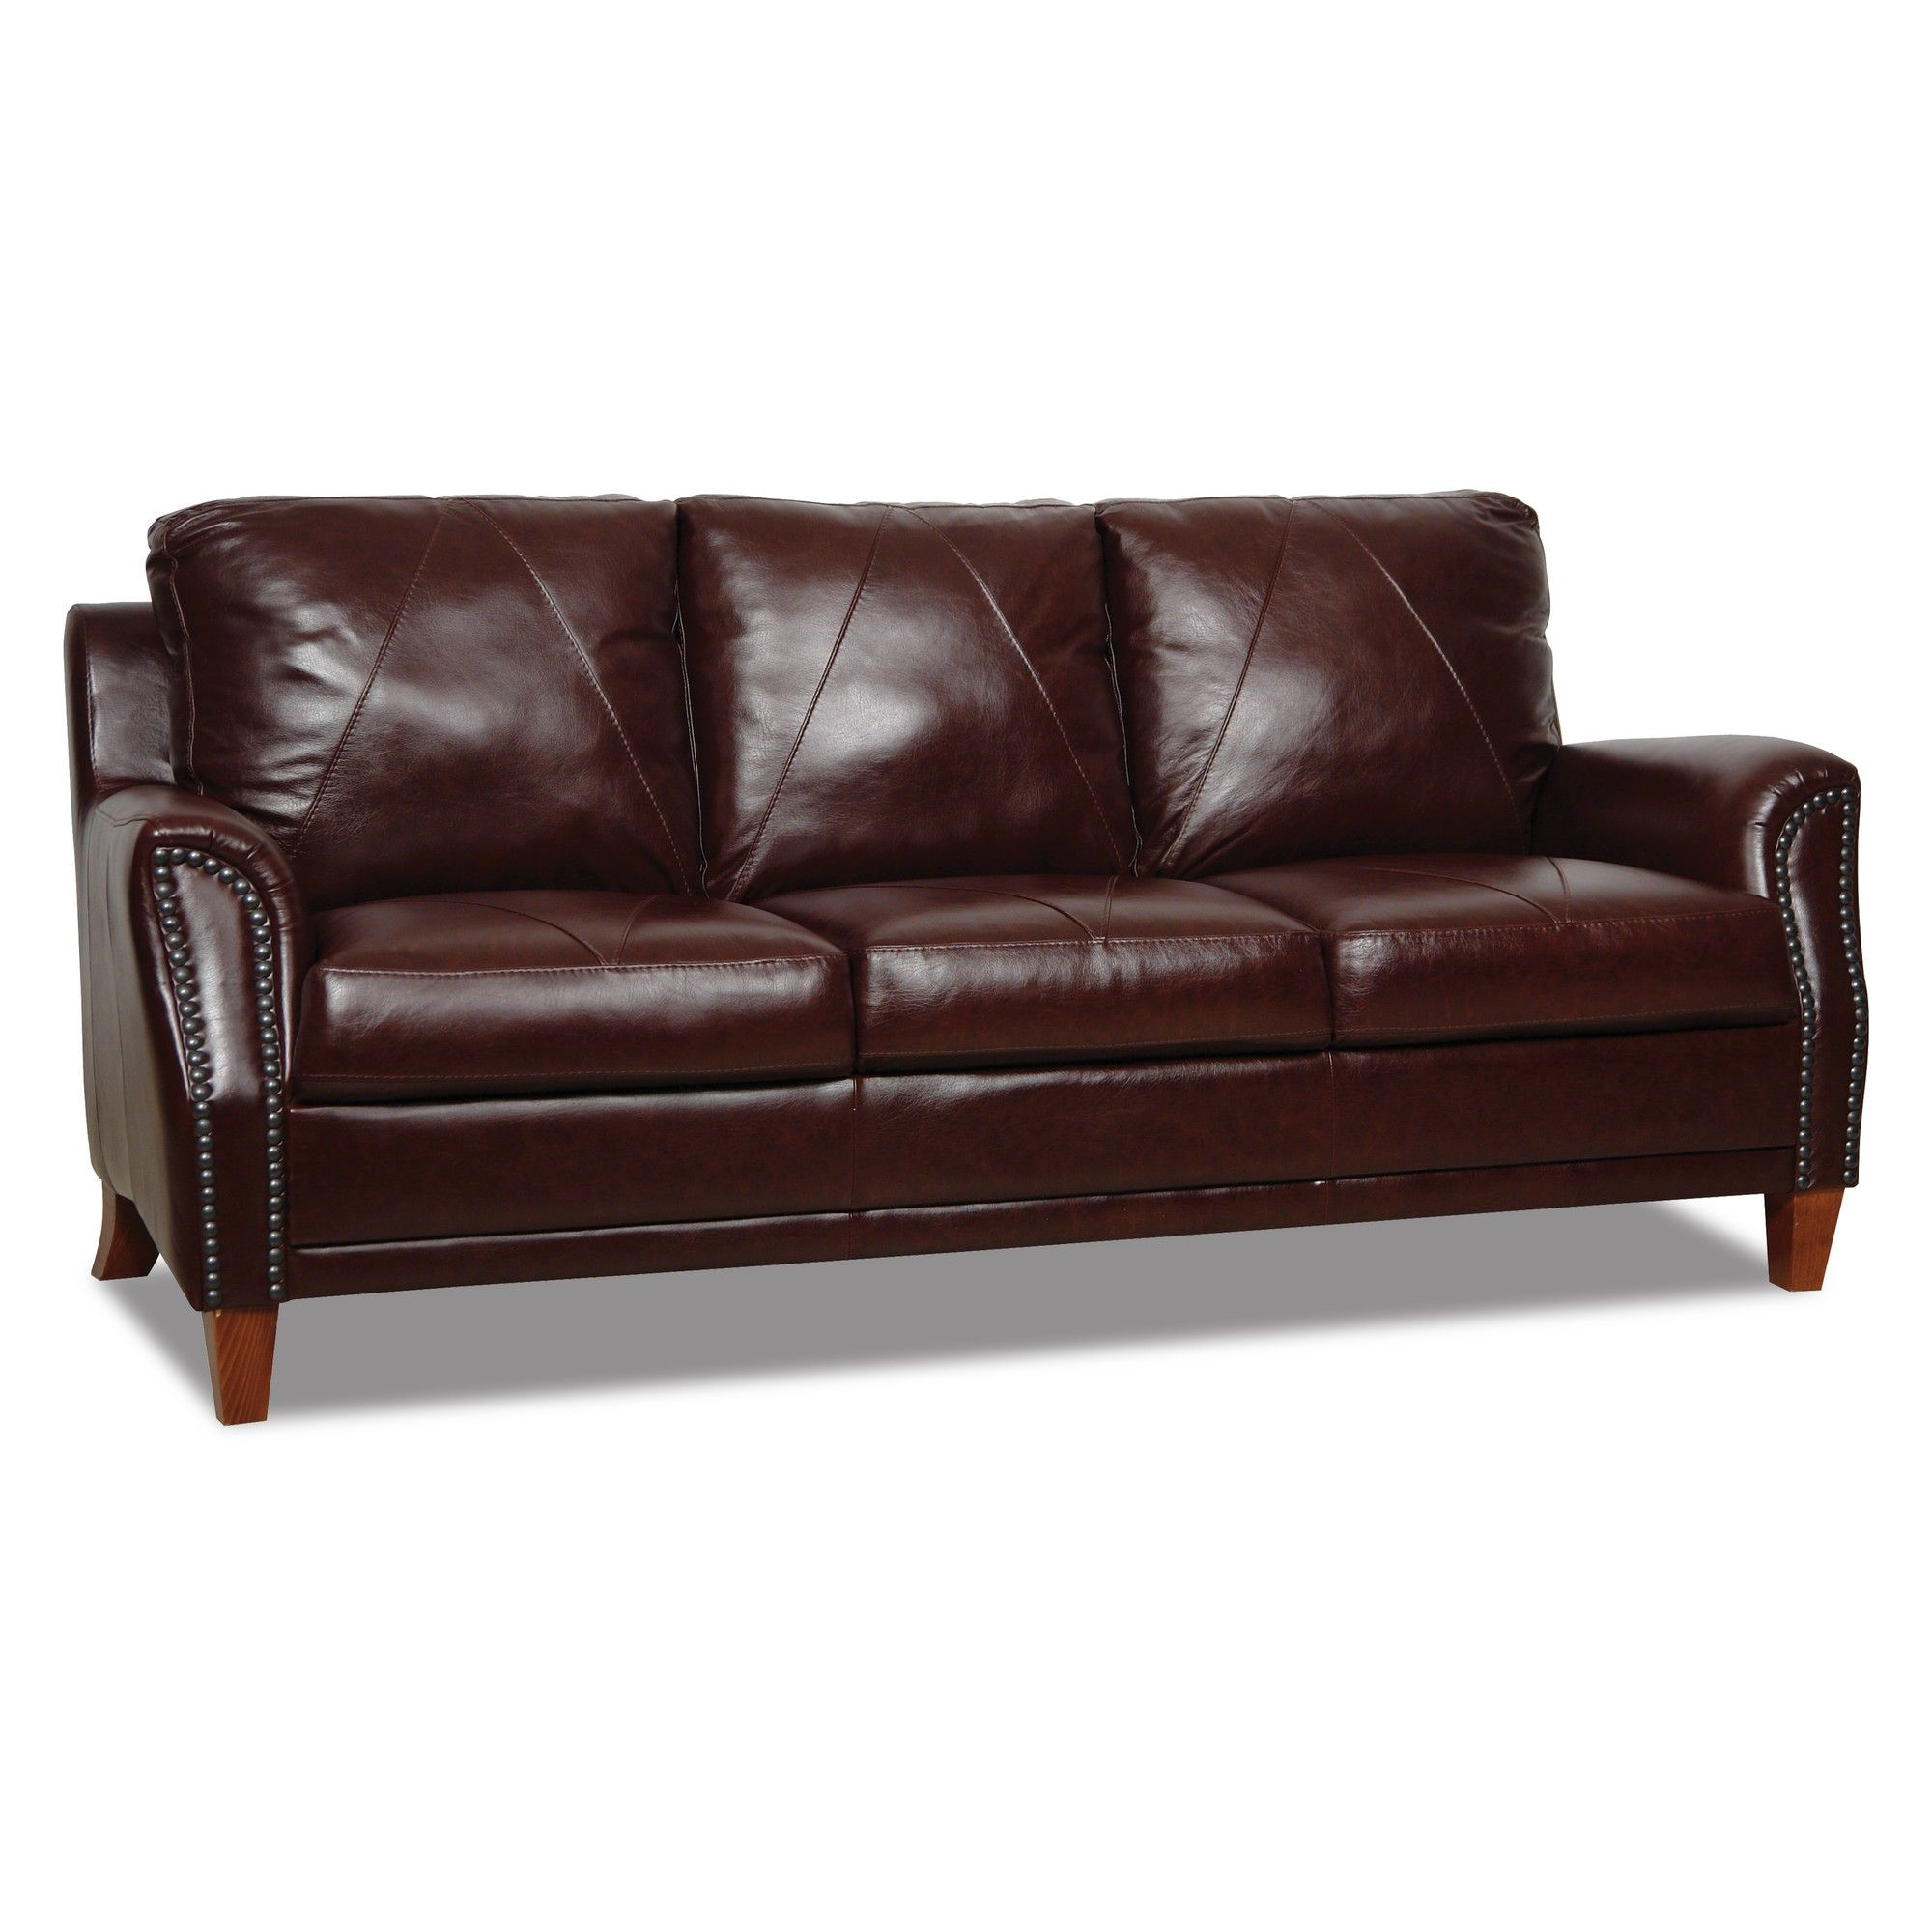 Luke Leather Austin Leather Modular Sofa Luk Austin S In regarding sizing 2000 X 2000